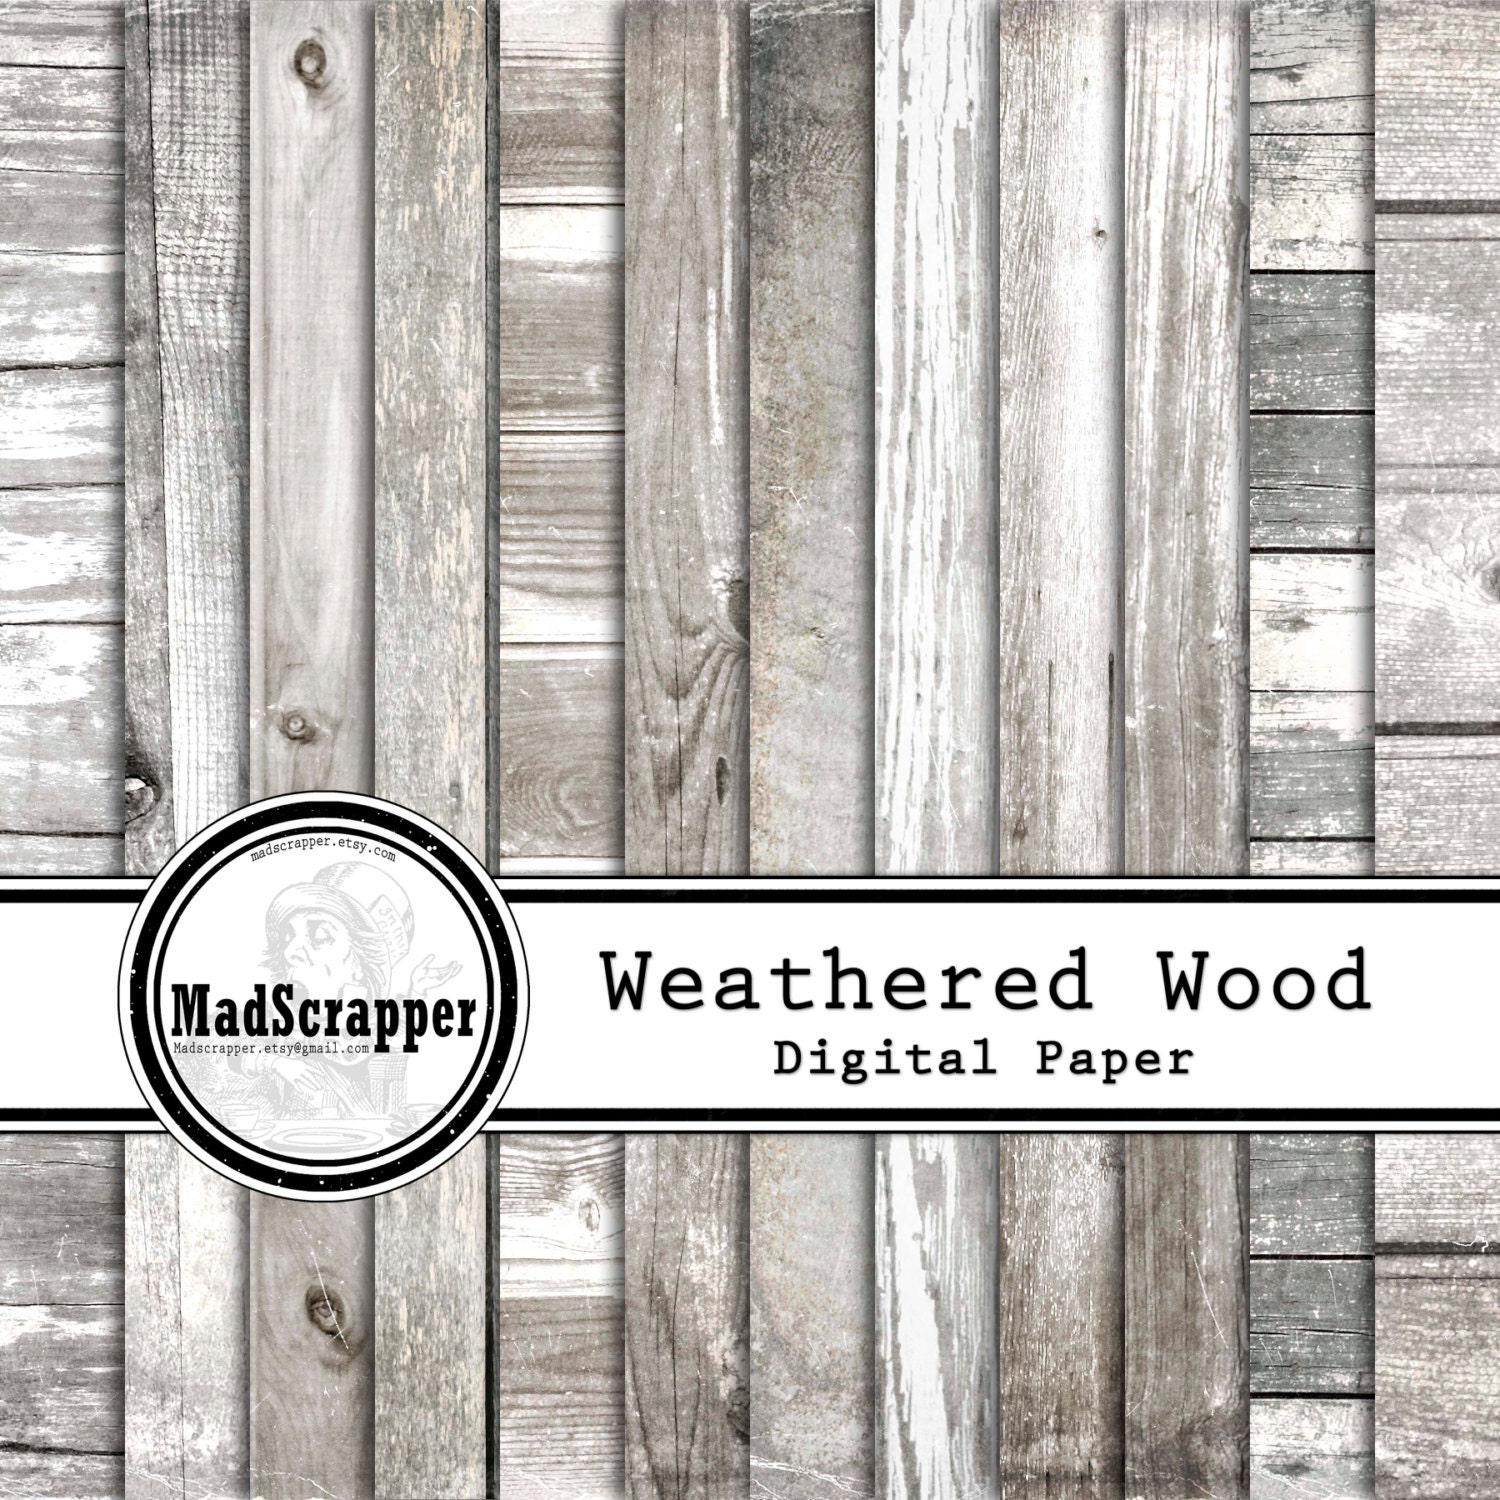 thesis on wood weathering Mametz wood by owen sheers 4 pages 906 words january 2015 saved essays save your essays here so you can locate them quickly.